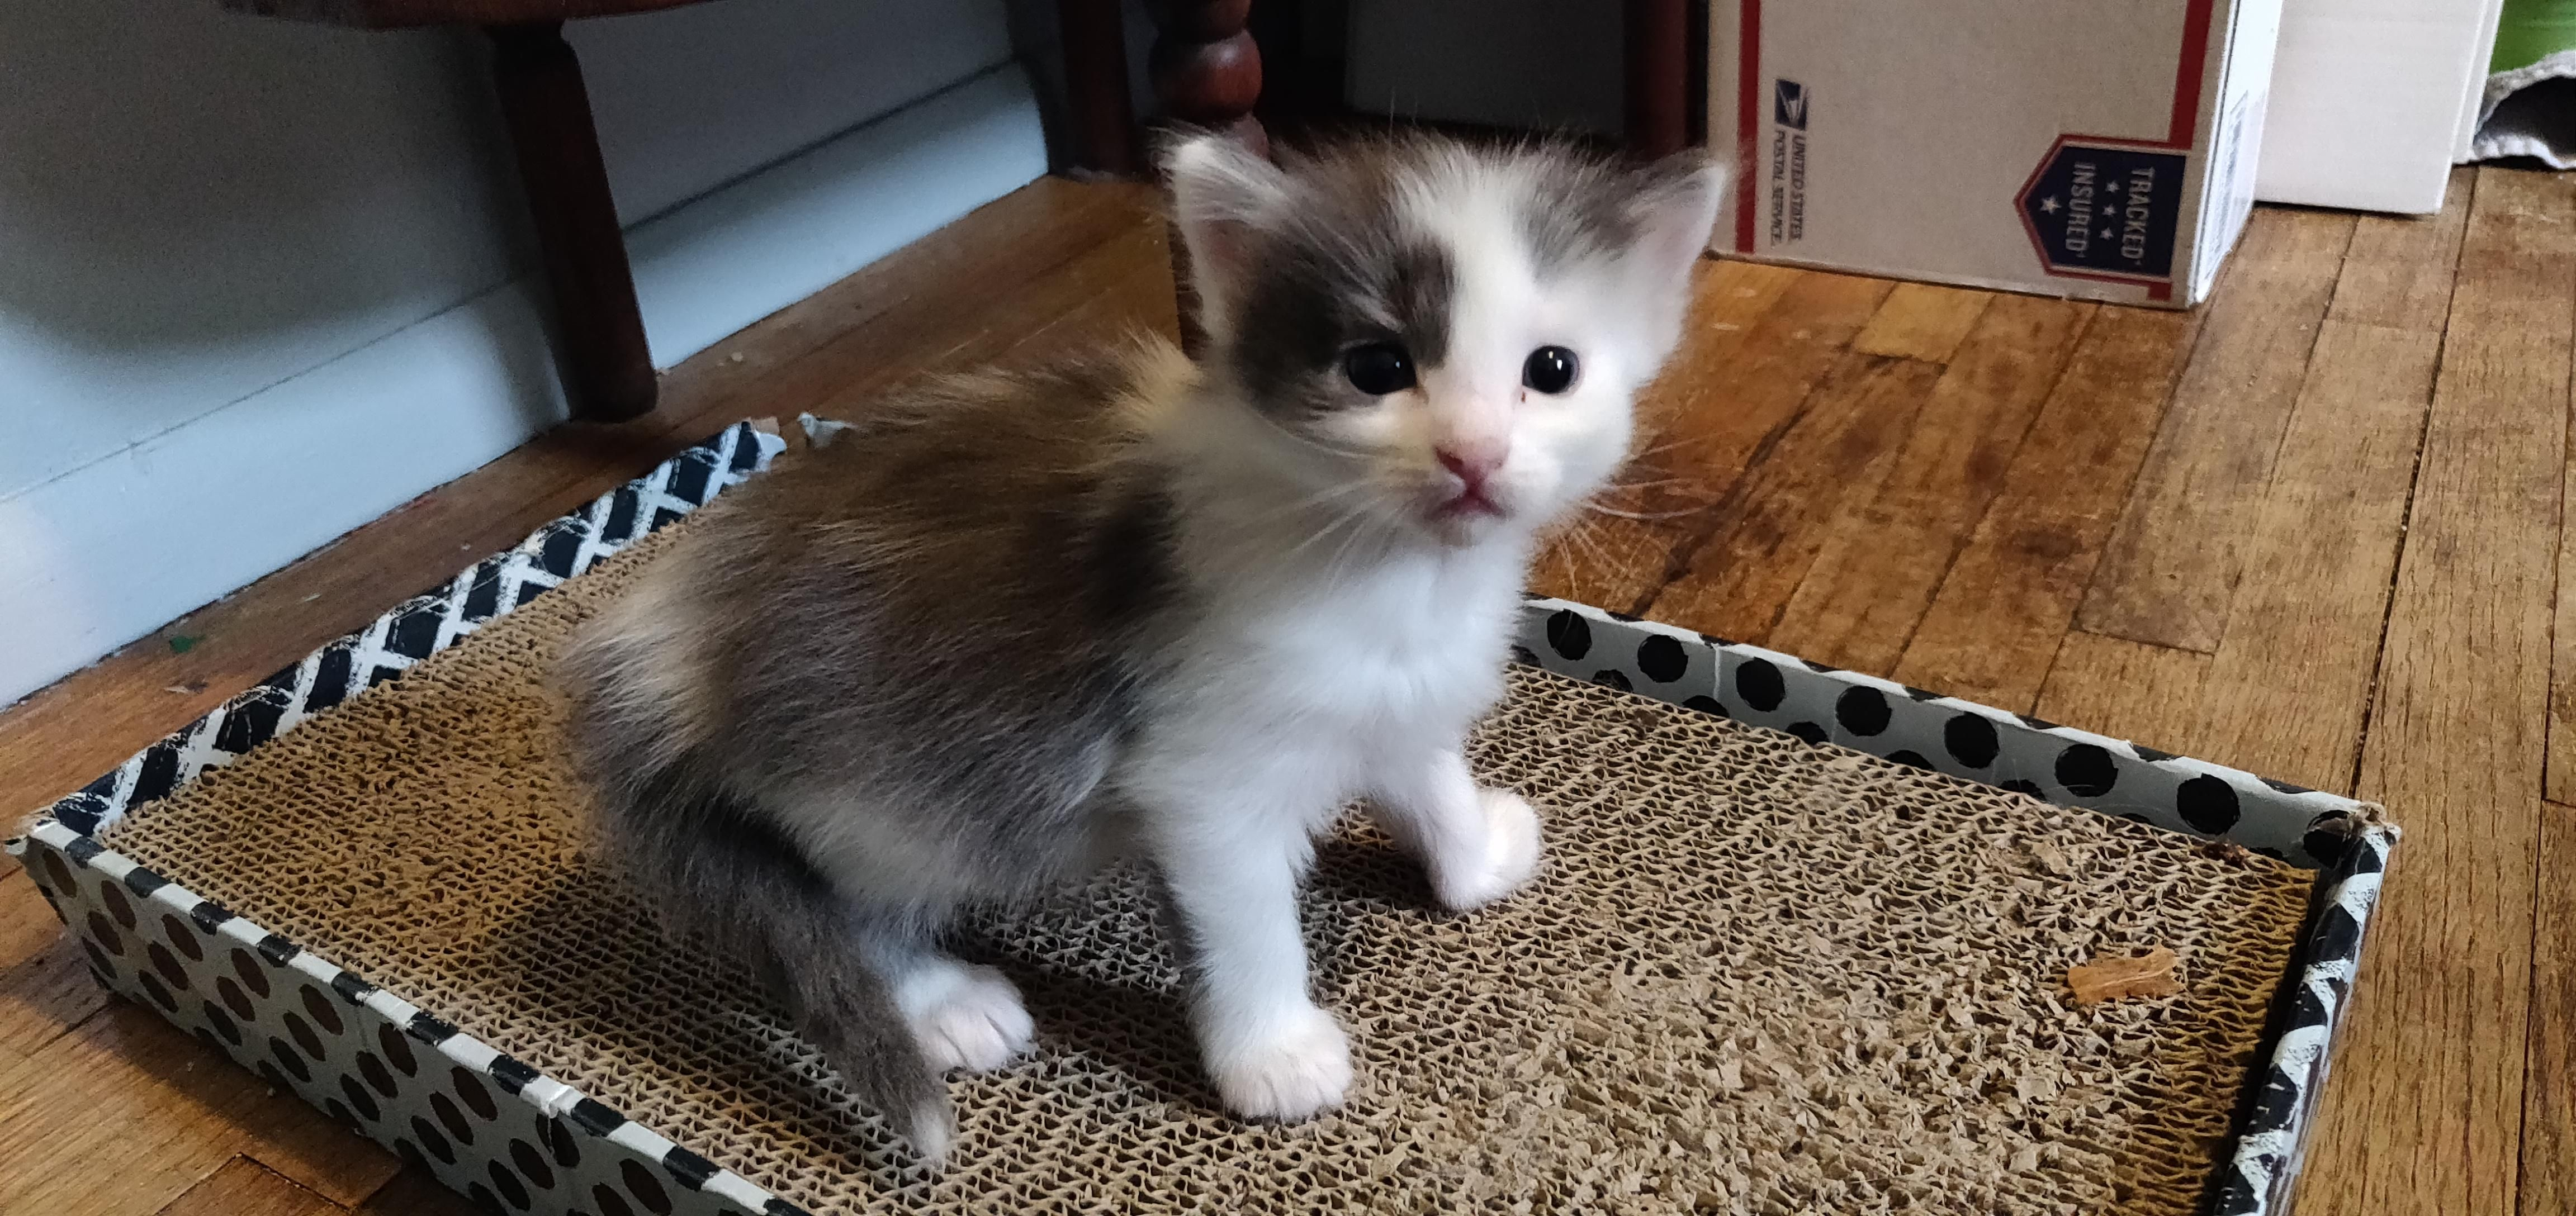 Four More Weeks And I Can Take This Dumpster Baby Home Kittens Cutest Cat S Cute Cats